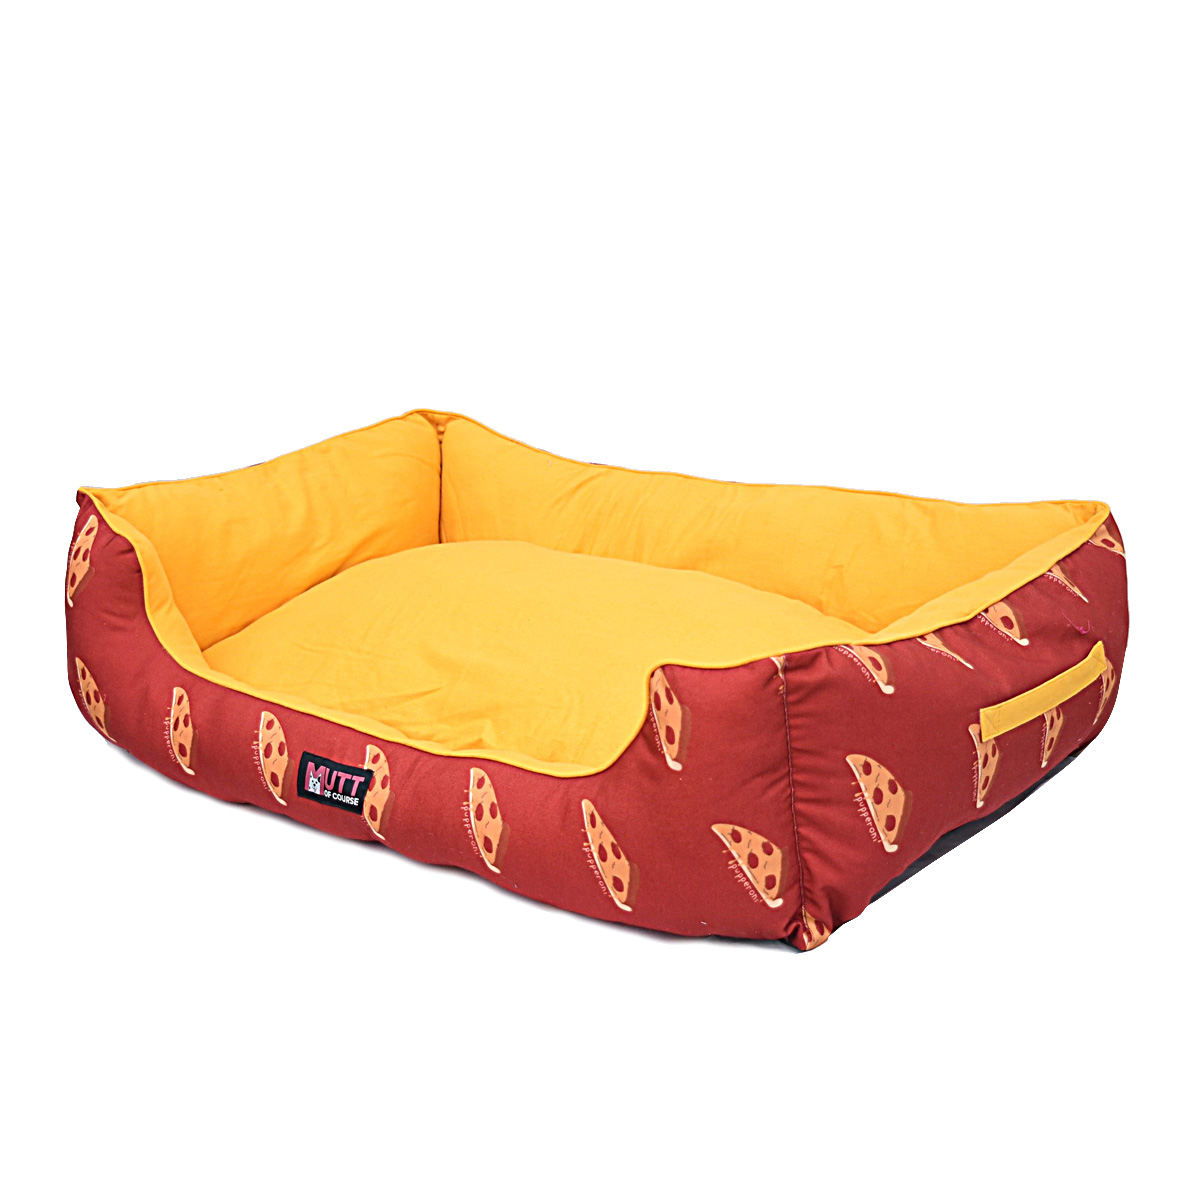 Mutt Of Course Lounger Bed For Dogs - Pupperoni Pizza - Small